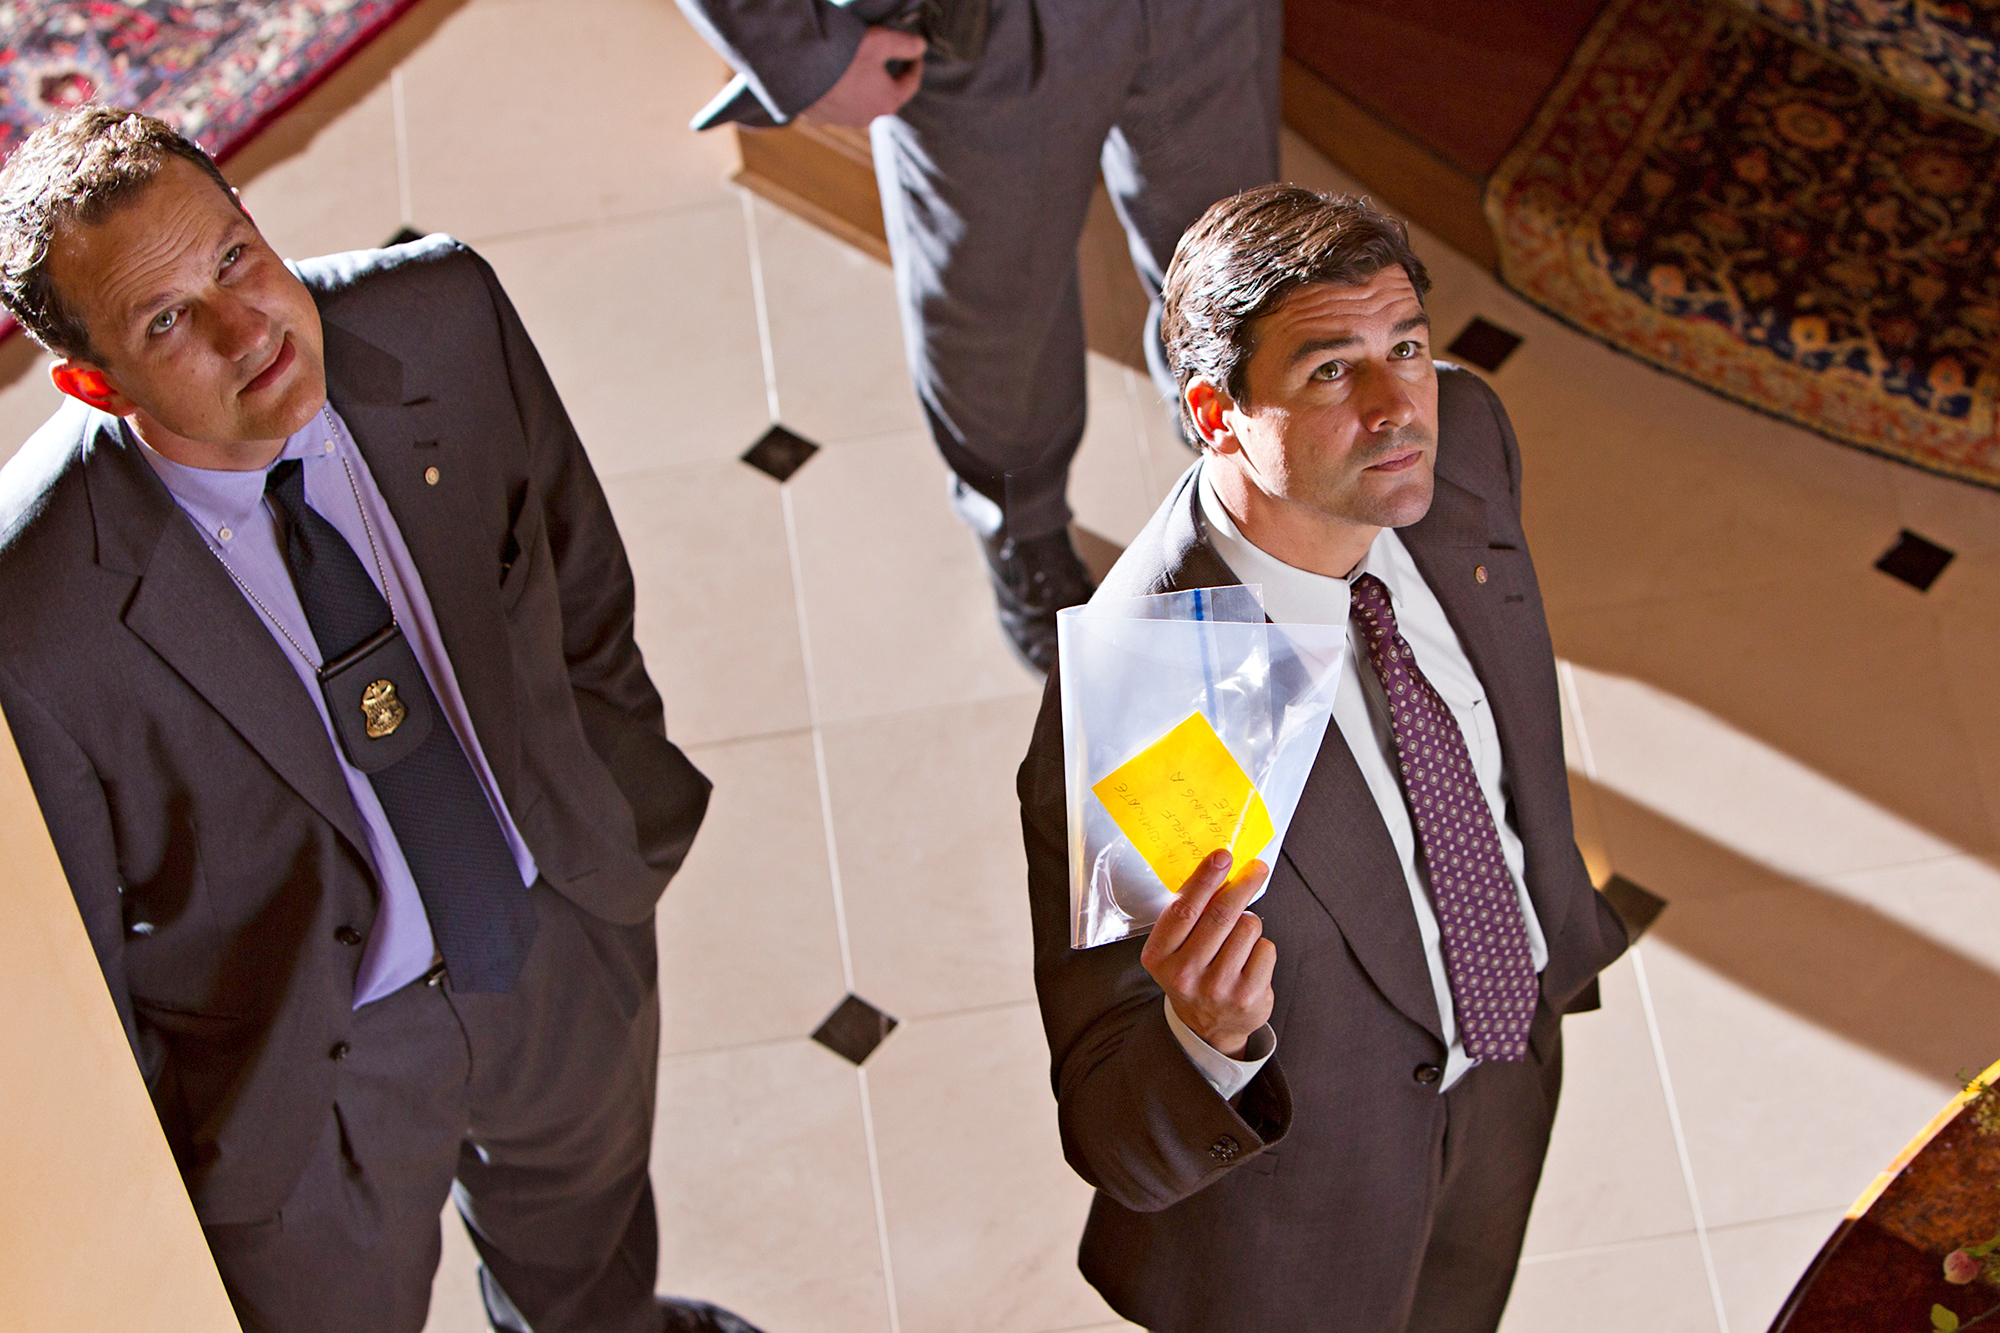 Kyle Chandler Role Call